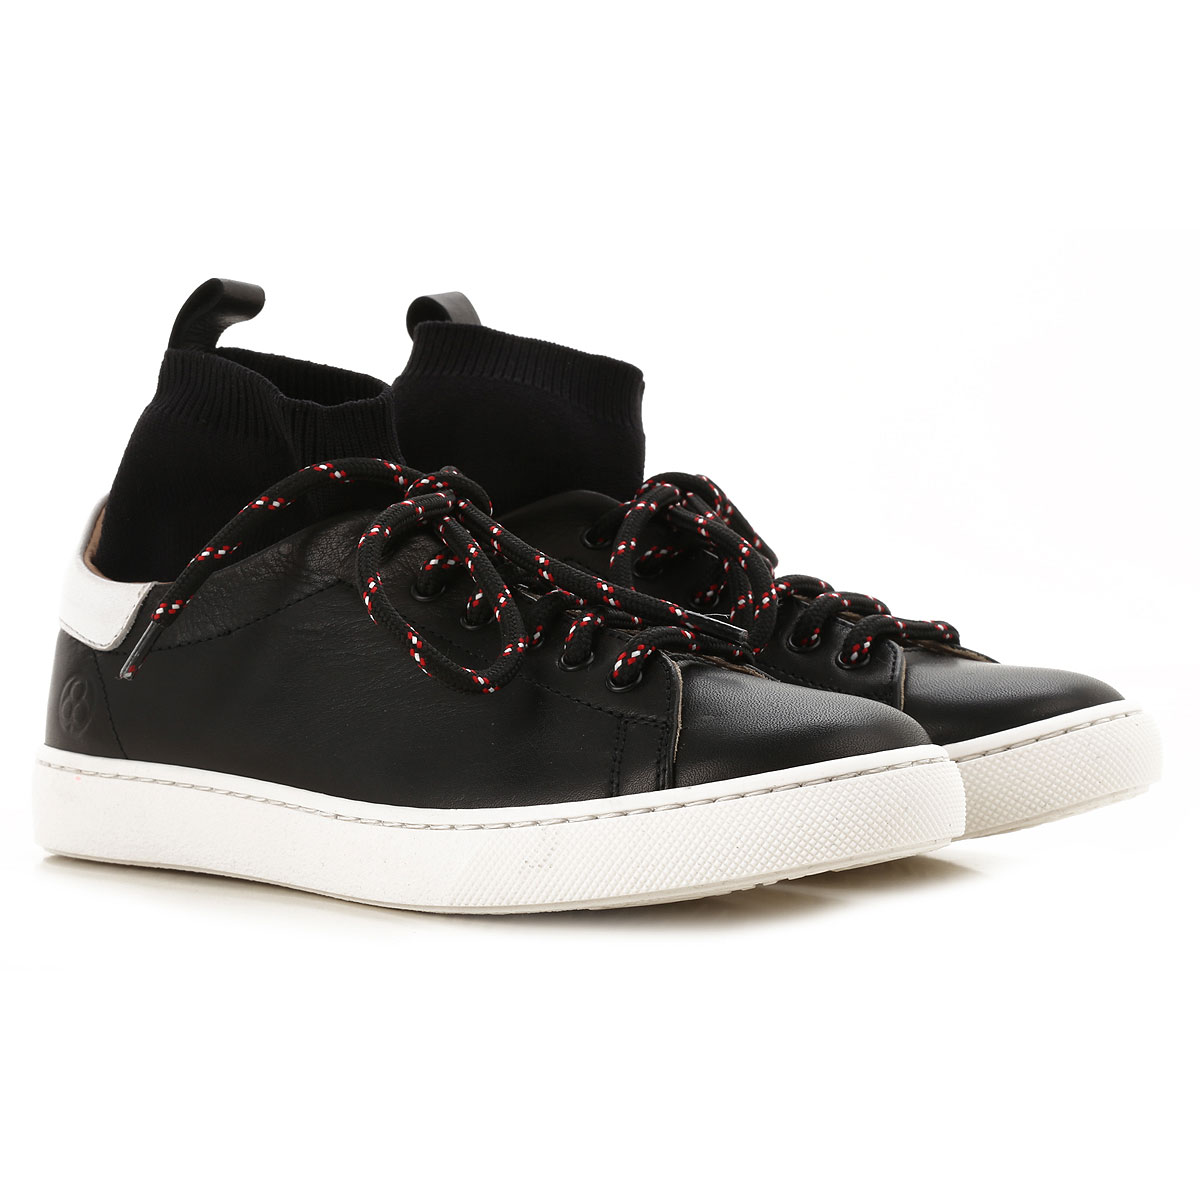 Image of Florens Kids Shoes for Boys, Black, Leather, 2017, 31 32 33 34 35 36 37 38